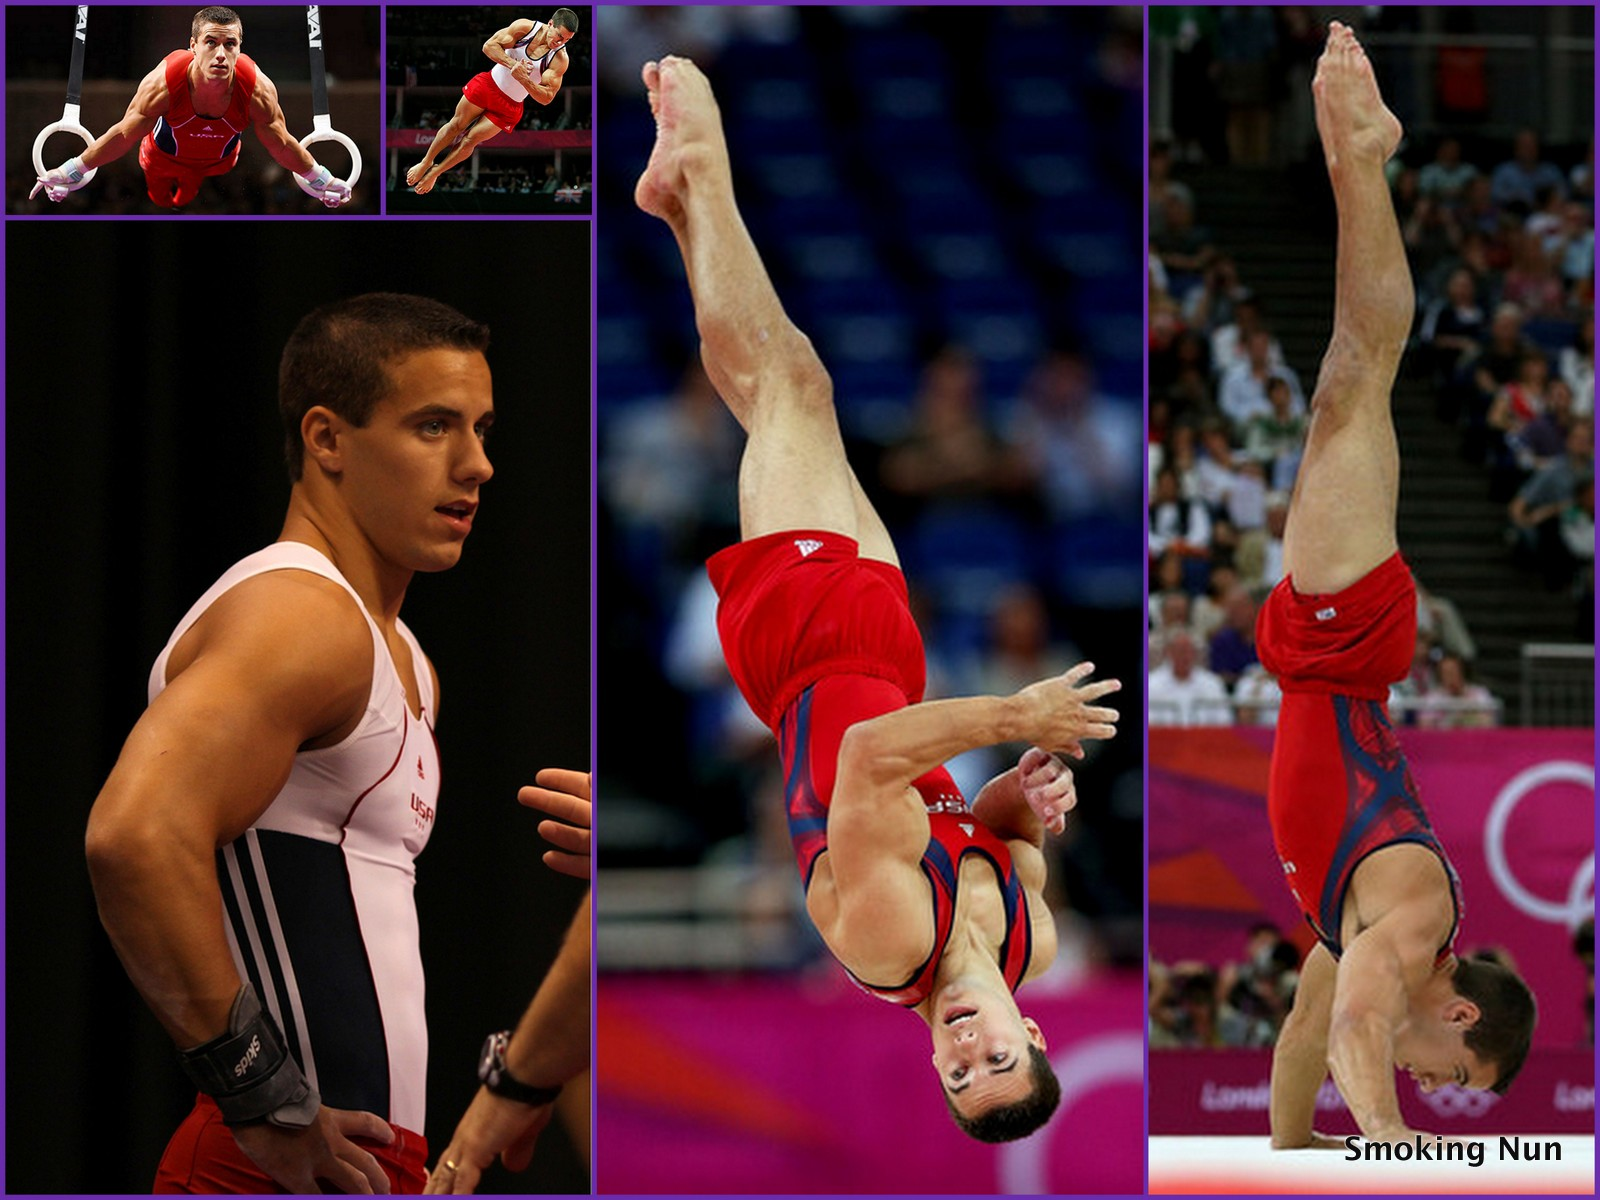 olympic gymnasts sam mikulak and jake dalton the smoking nun